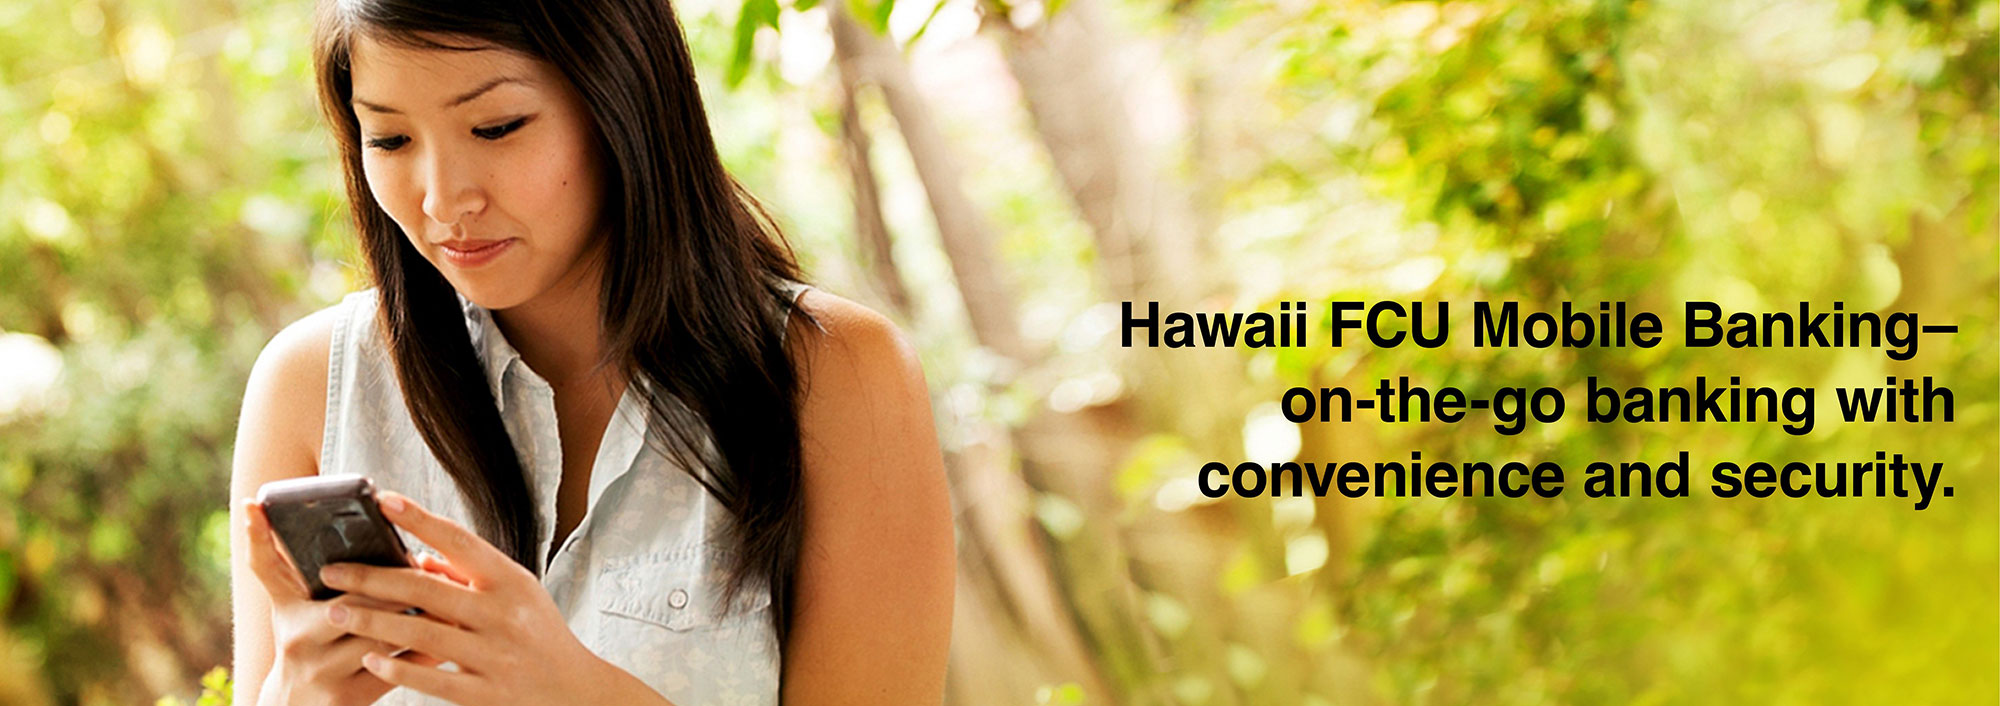 Hawaii FCU Mobile Banking - on-the-go banking with convenience and security